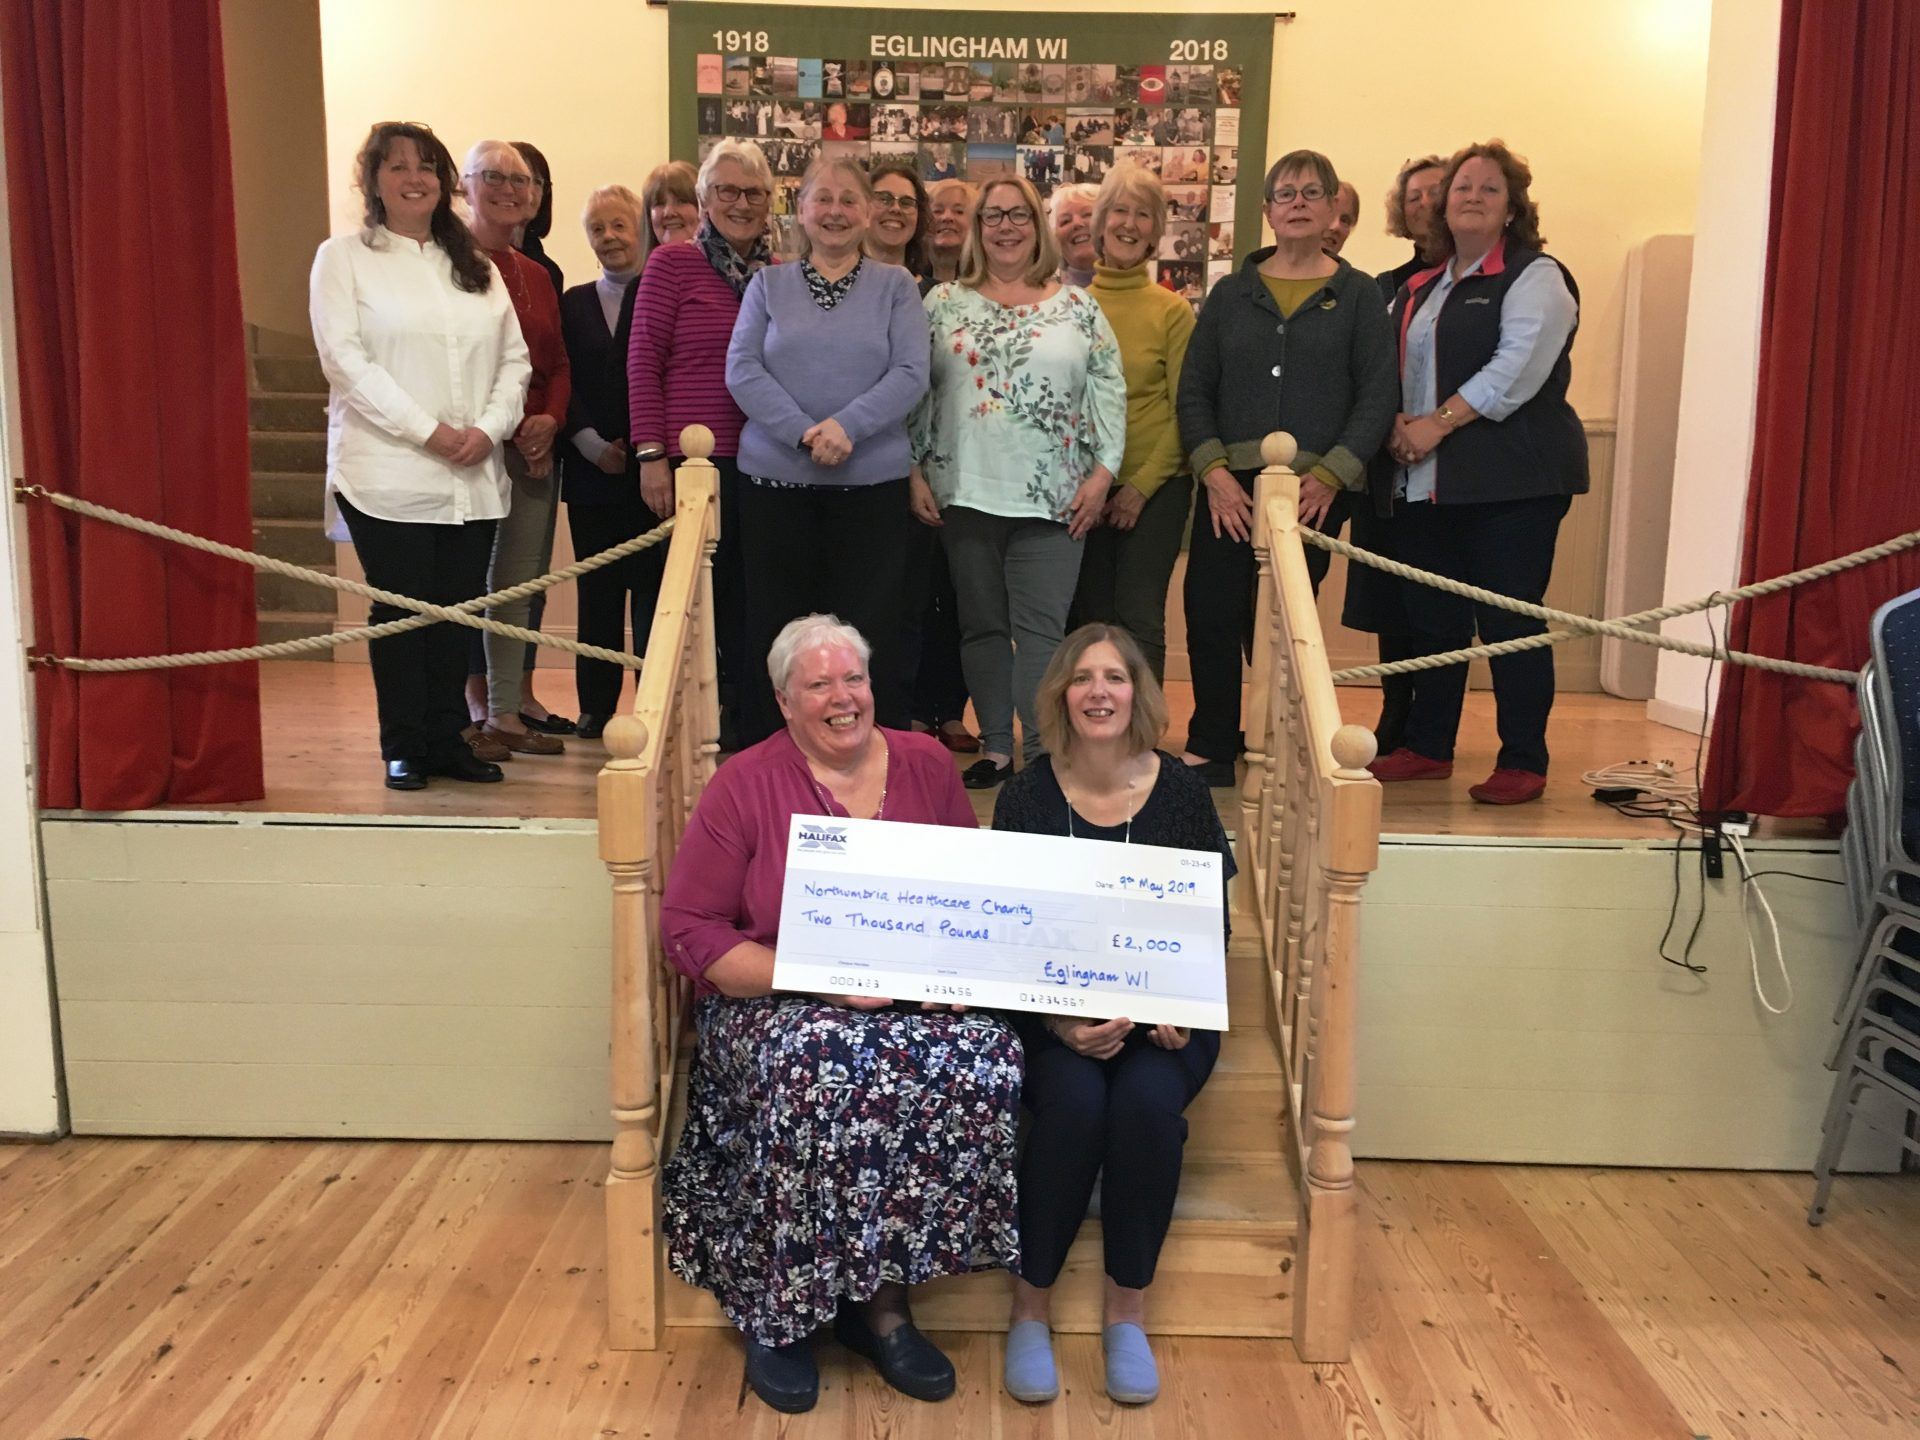 Eglingham WI celebrates centenary year and raise £2,000 to support hospitals